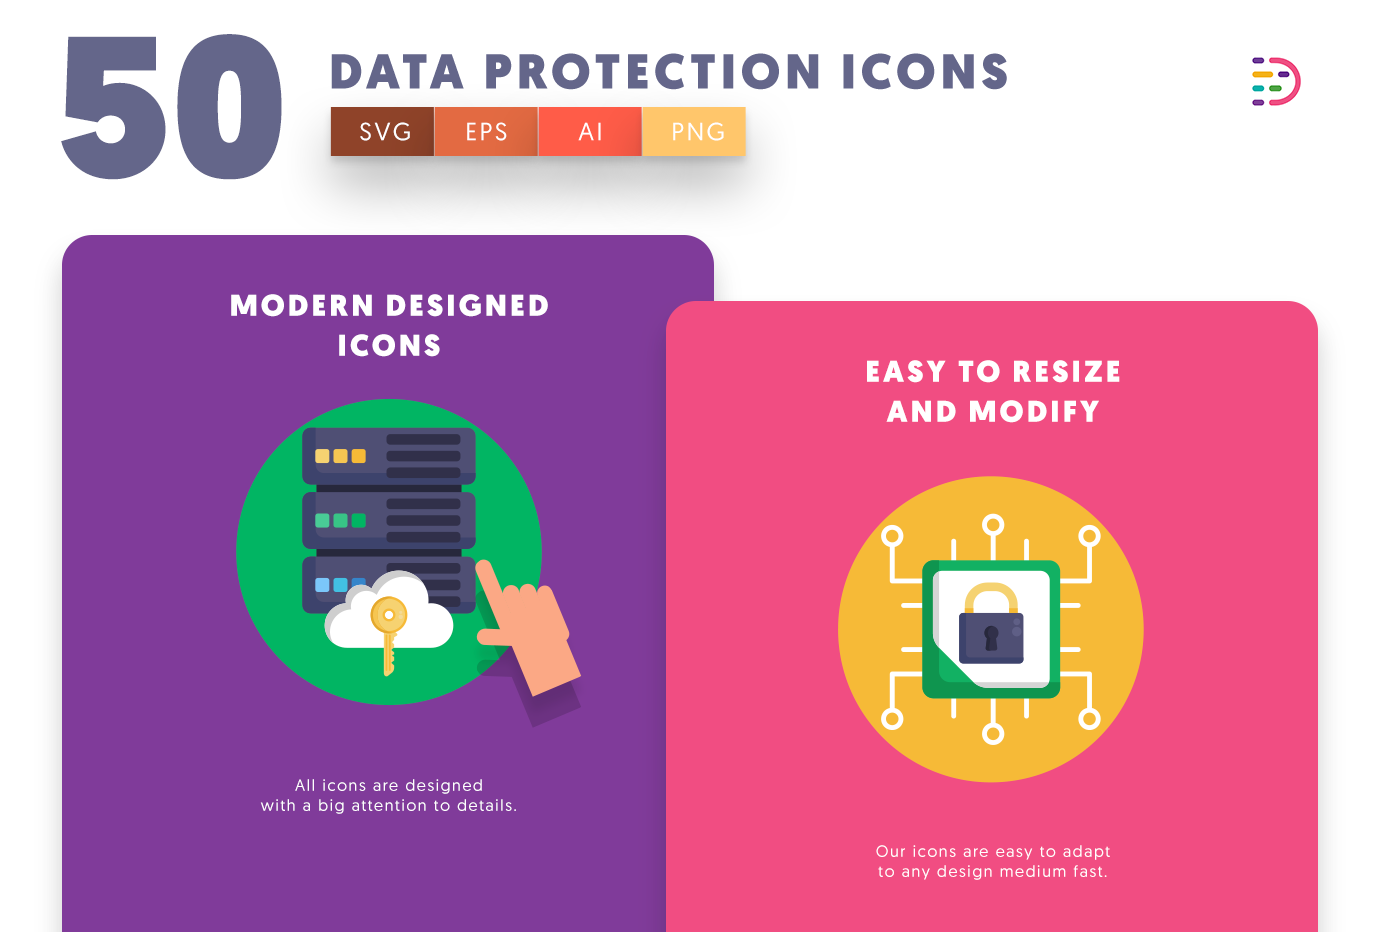 Data Protection icons png/svg/eps